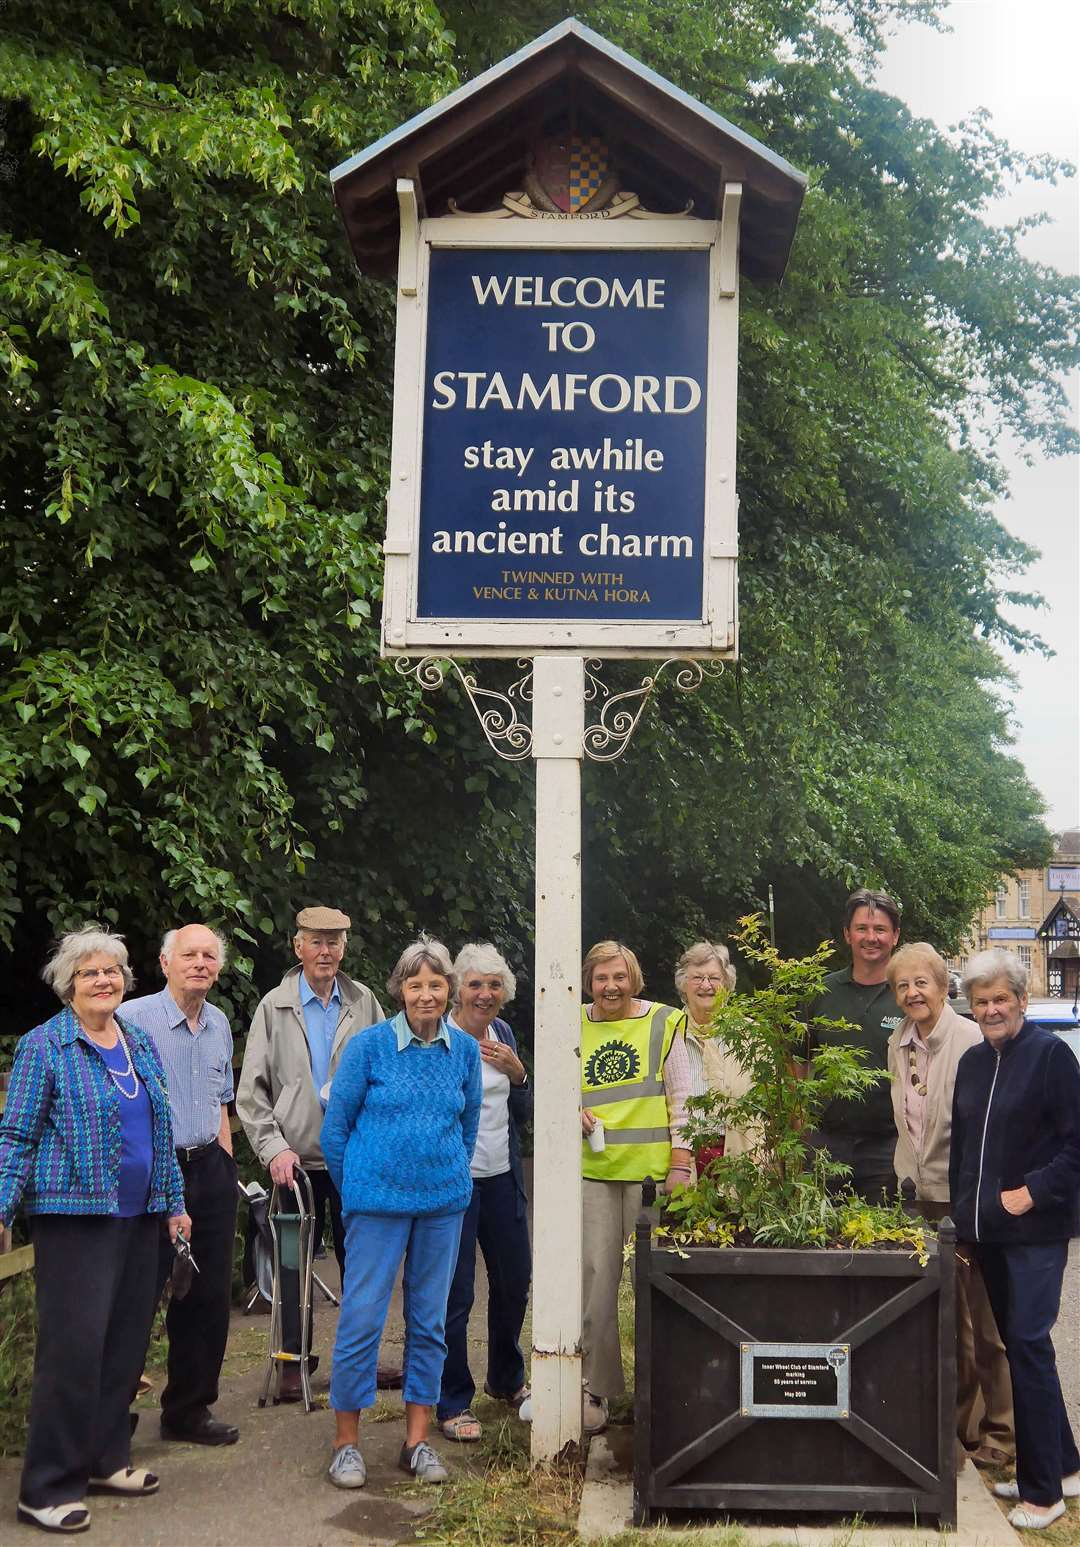 Inner Wheel Club of Stamford members with the flower box at the entrance to the town